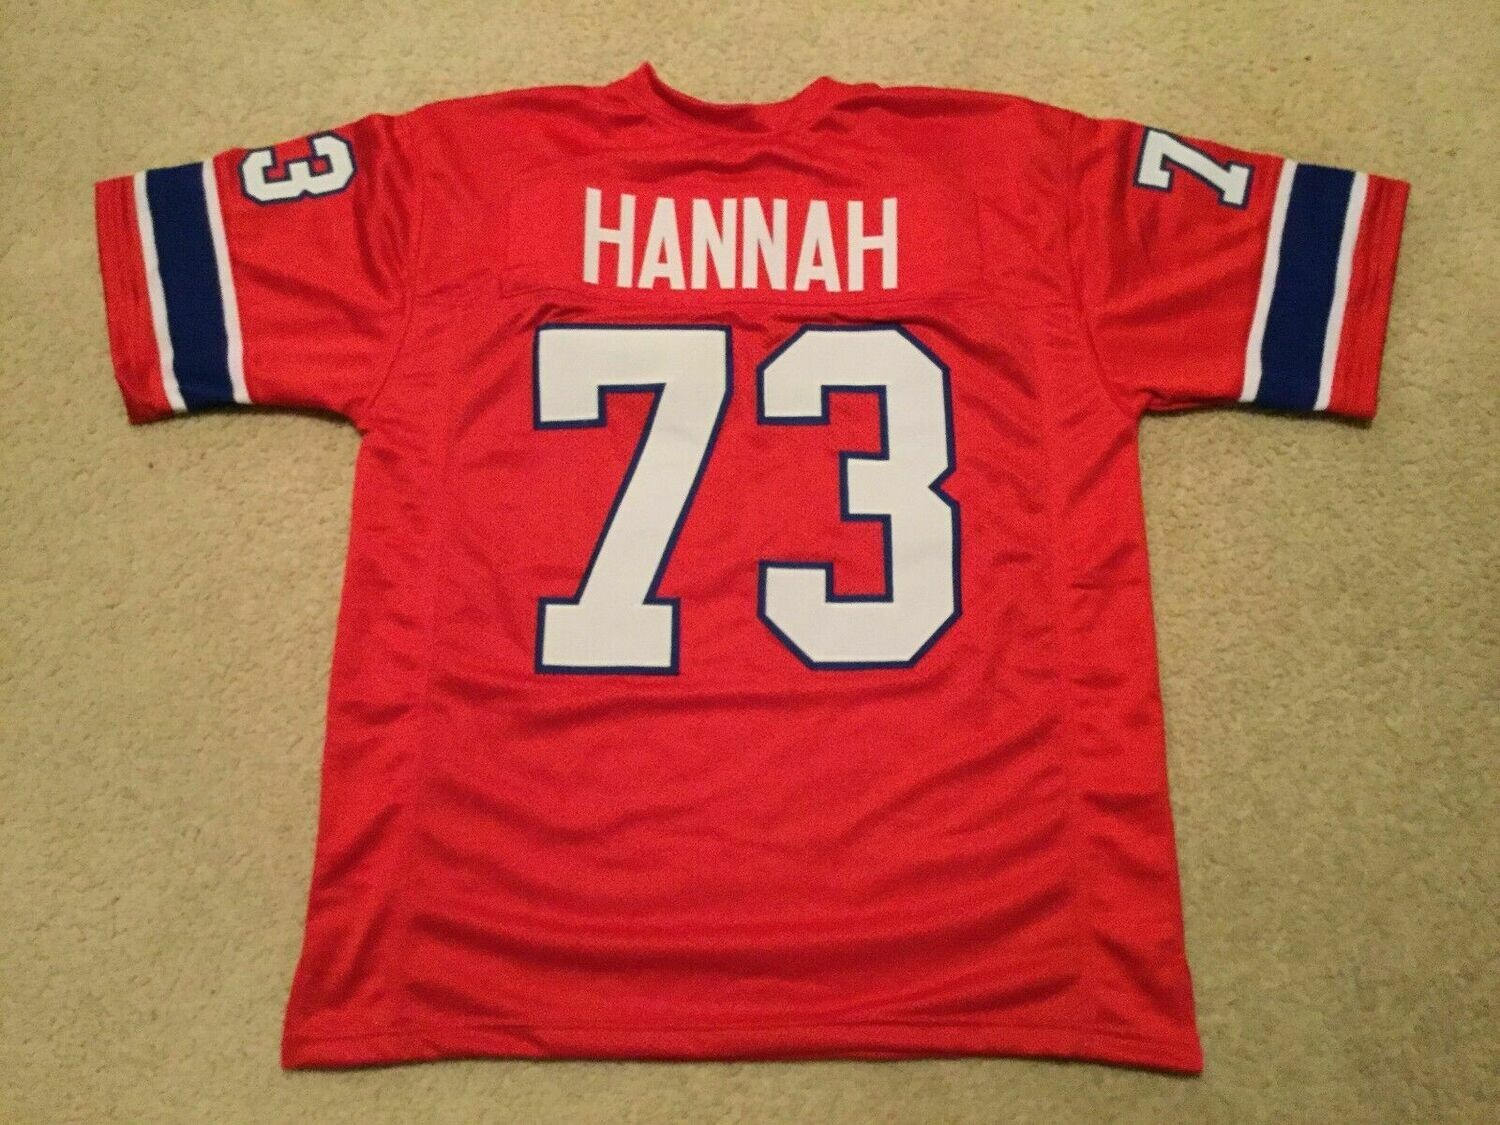 UNSIGNED CUSTOM Sewn Stitched John Hannah Red Jersey